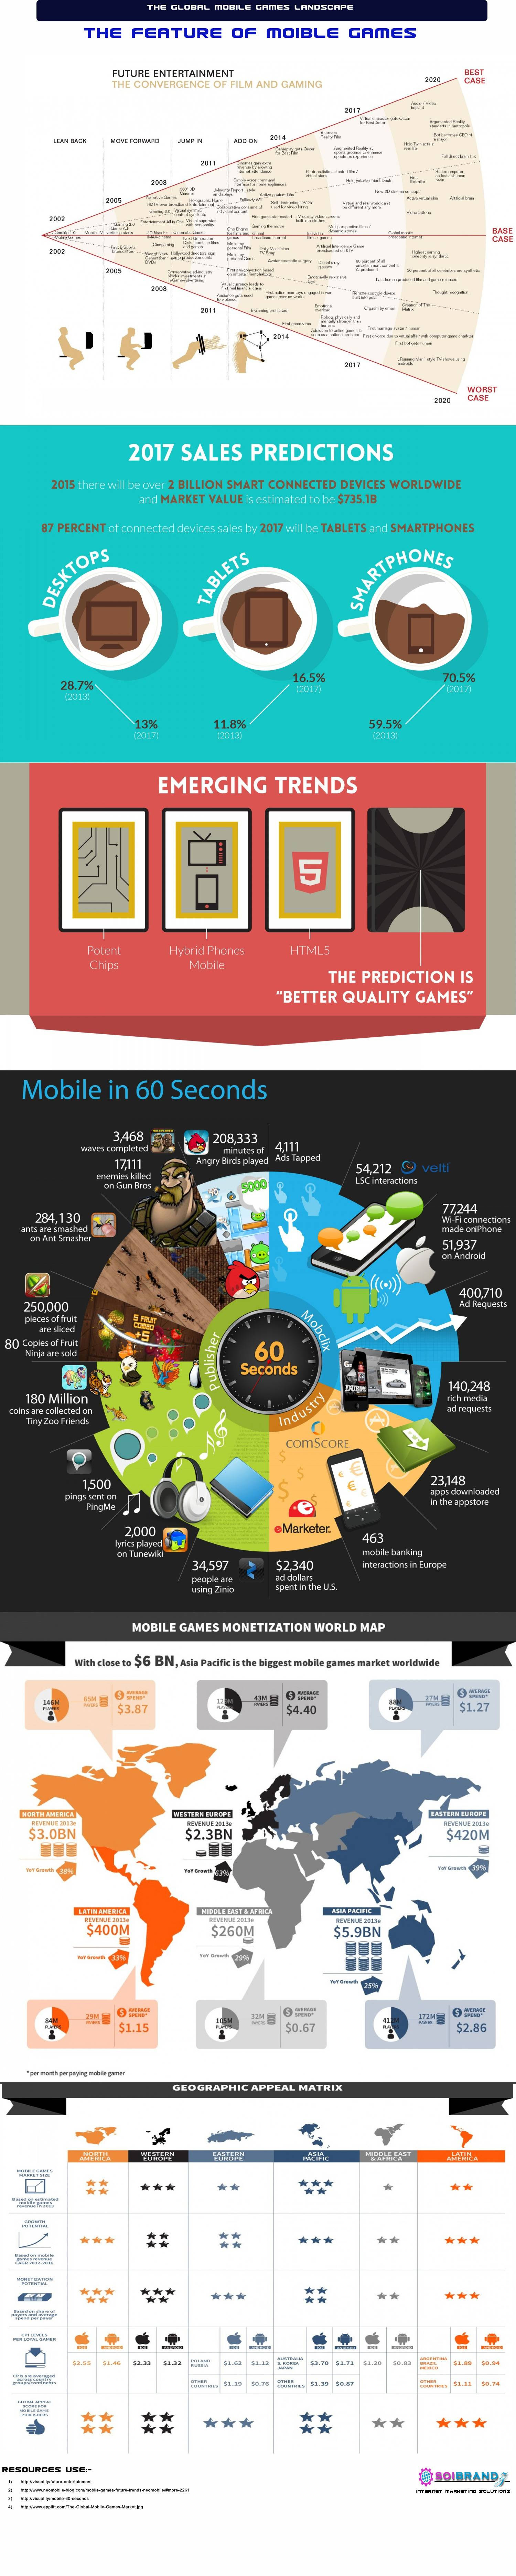 Infographic: The Feature of Mobile Games #infographic